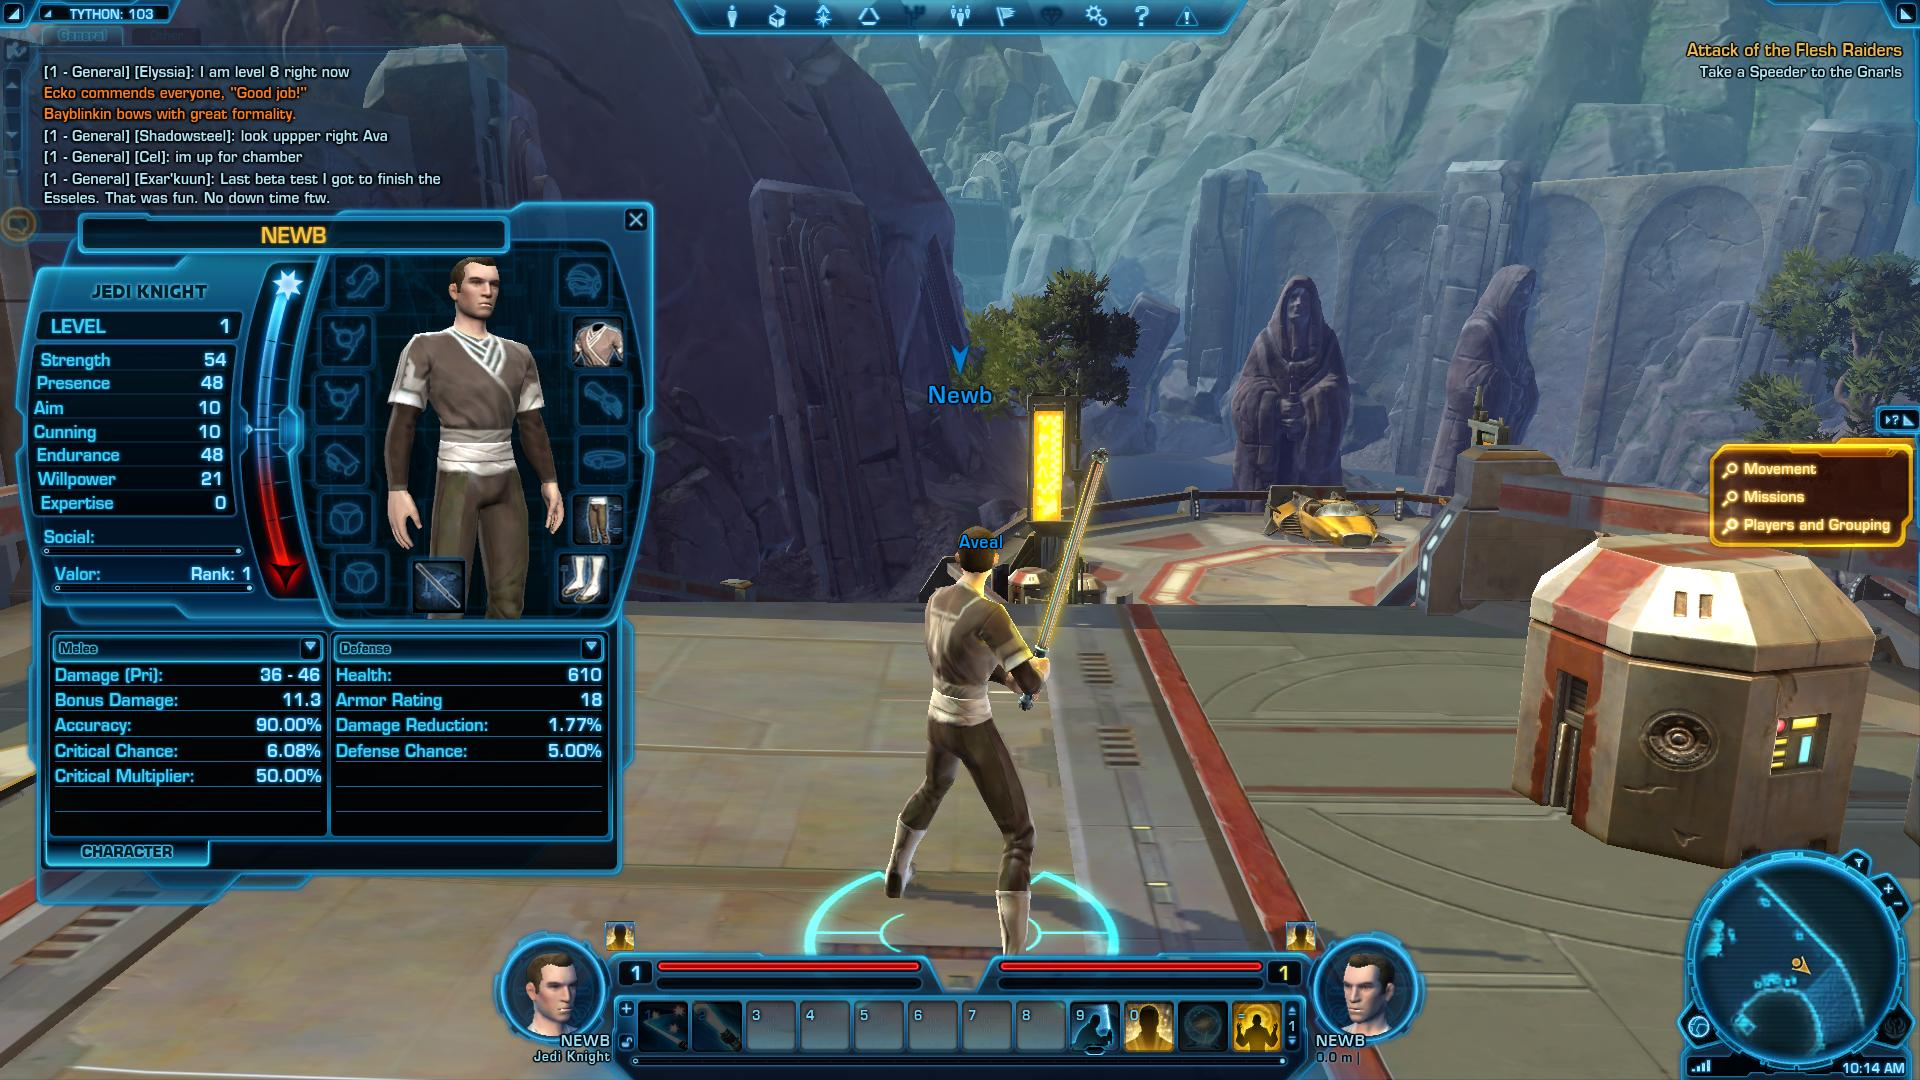 swtor-2011-Star-Wars-The-Old-Republic-Beta-Gameplay-26341.jpg